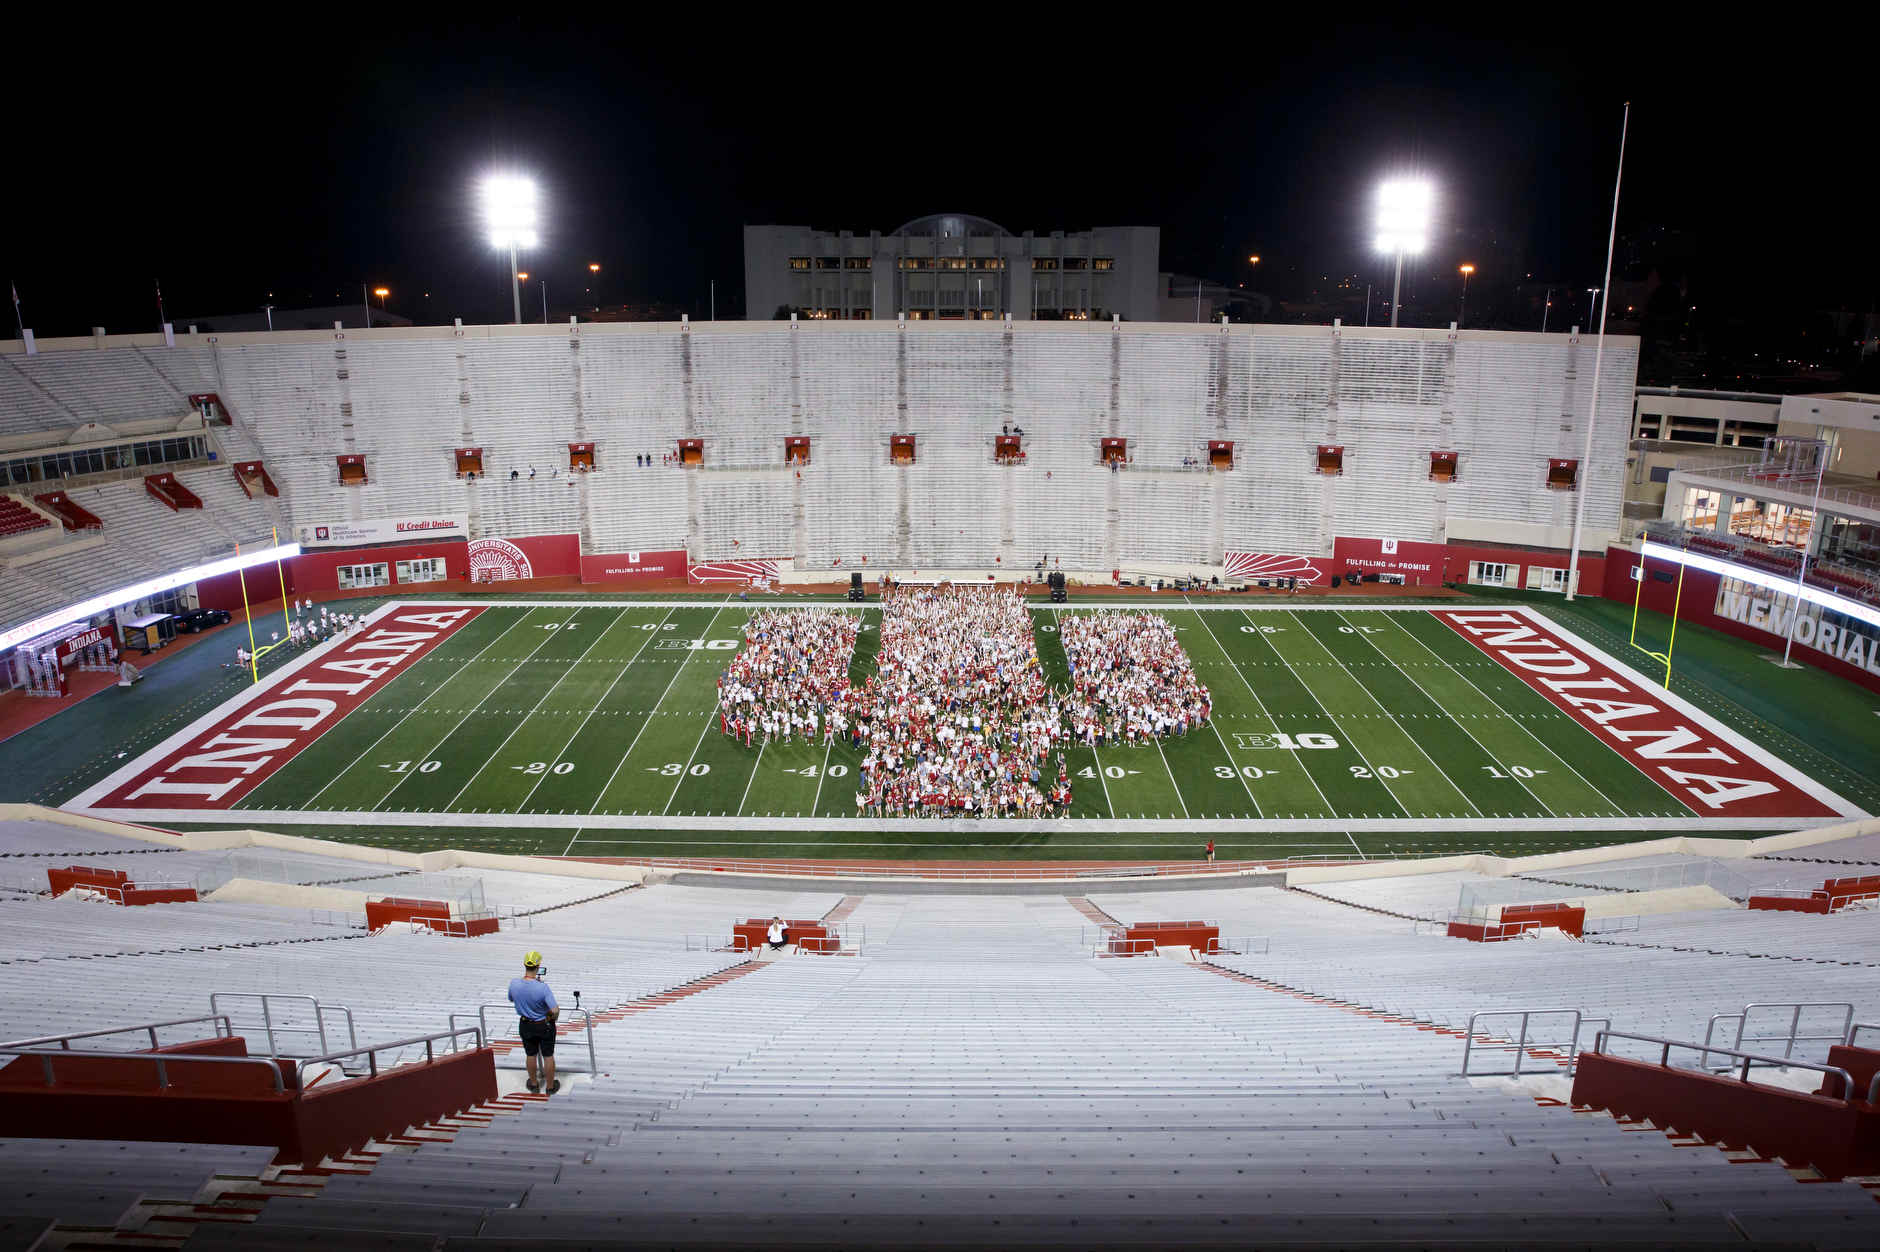 Members of the IU Class of 2023 pose for a class photo on the field during the Traditions and Spirit of IU at Memorial Stadium on Friday, Aug. 23, 2019. (James Brosher/Indiana University)